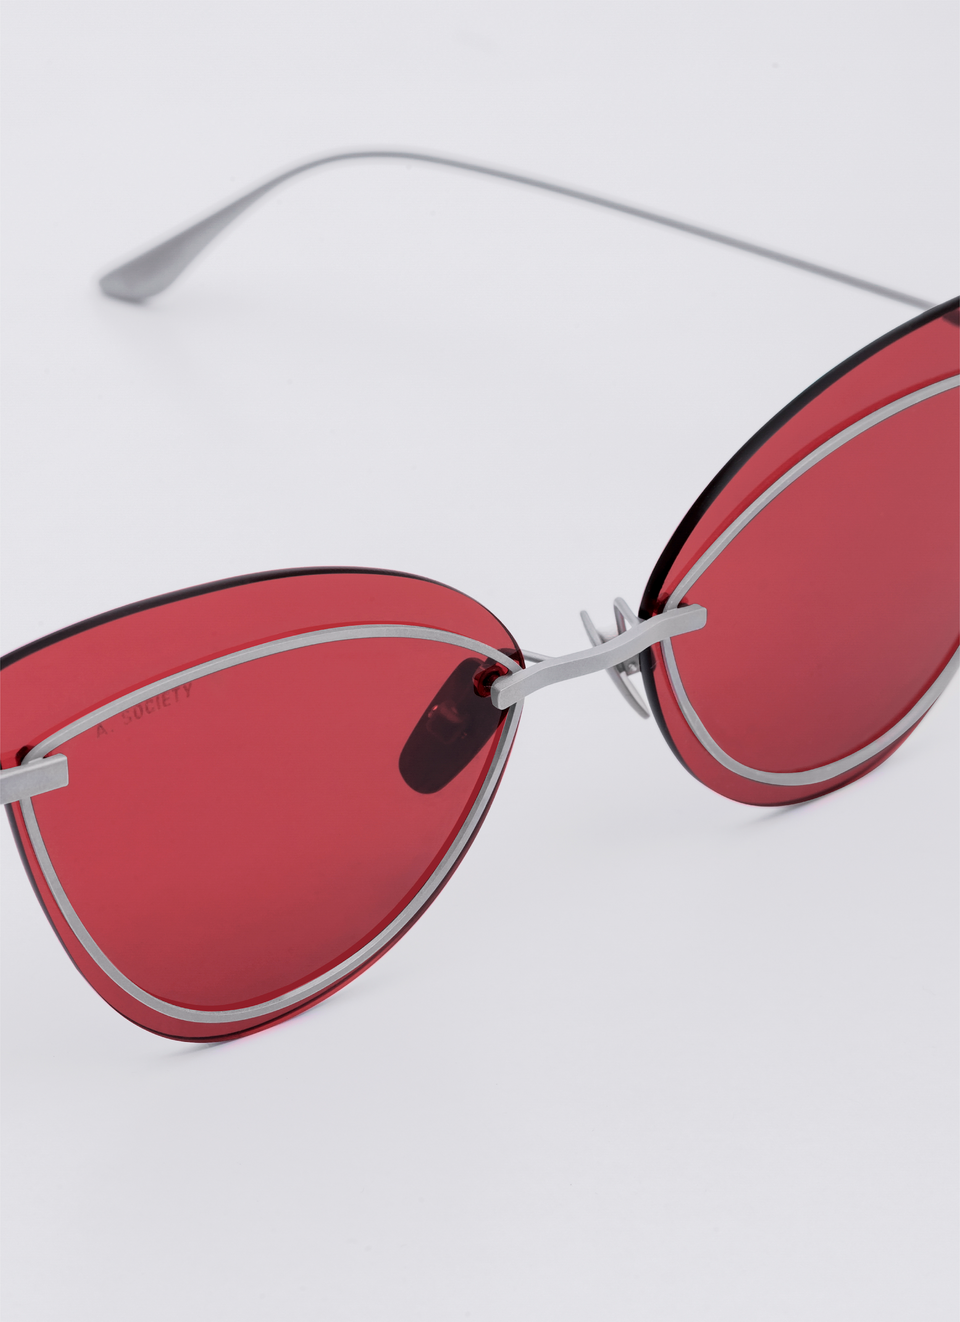 A SOCIETY LINDA - Red Titanium Cat-Eye Sunglasses Detail